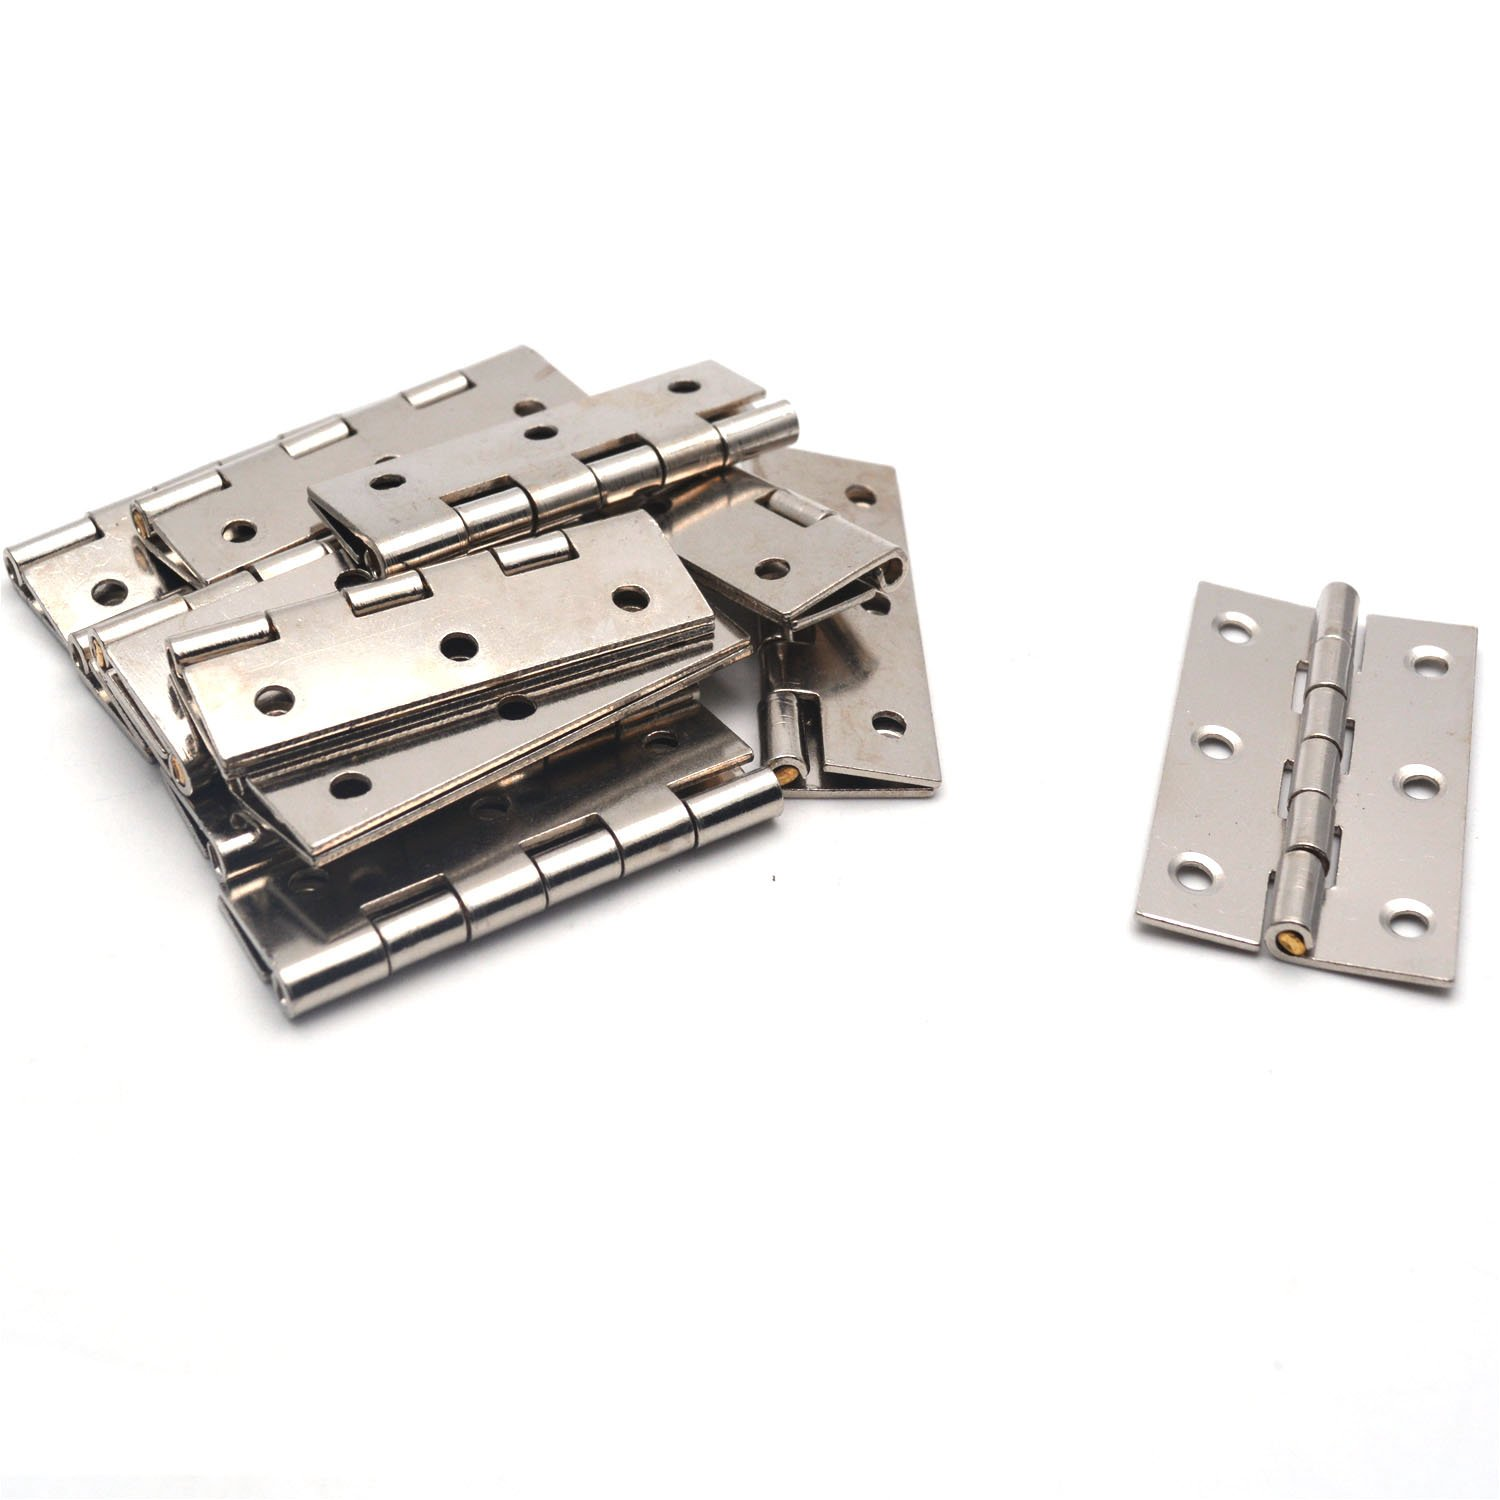 Antrader Folding Butt Hinge 2-inch Long Cabinet Gate Closet Door Hinge Home Furniture Hardware Silver Tone 12pcs